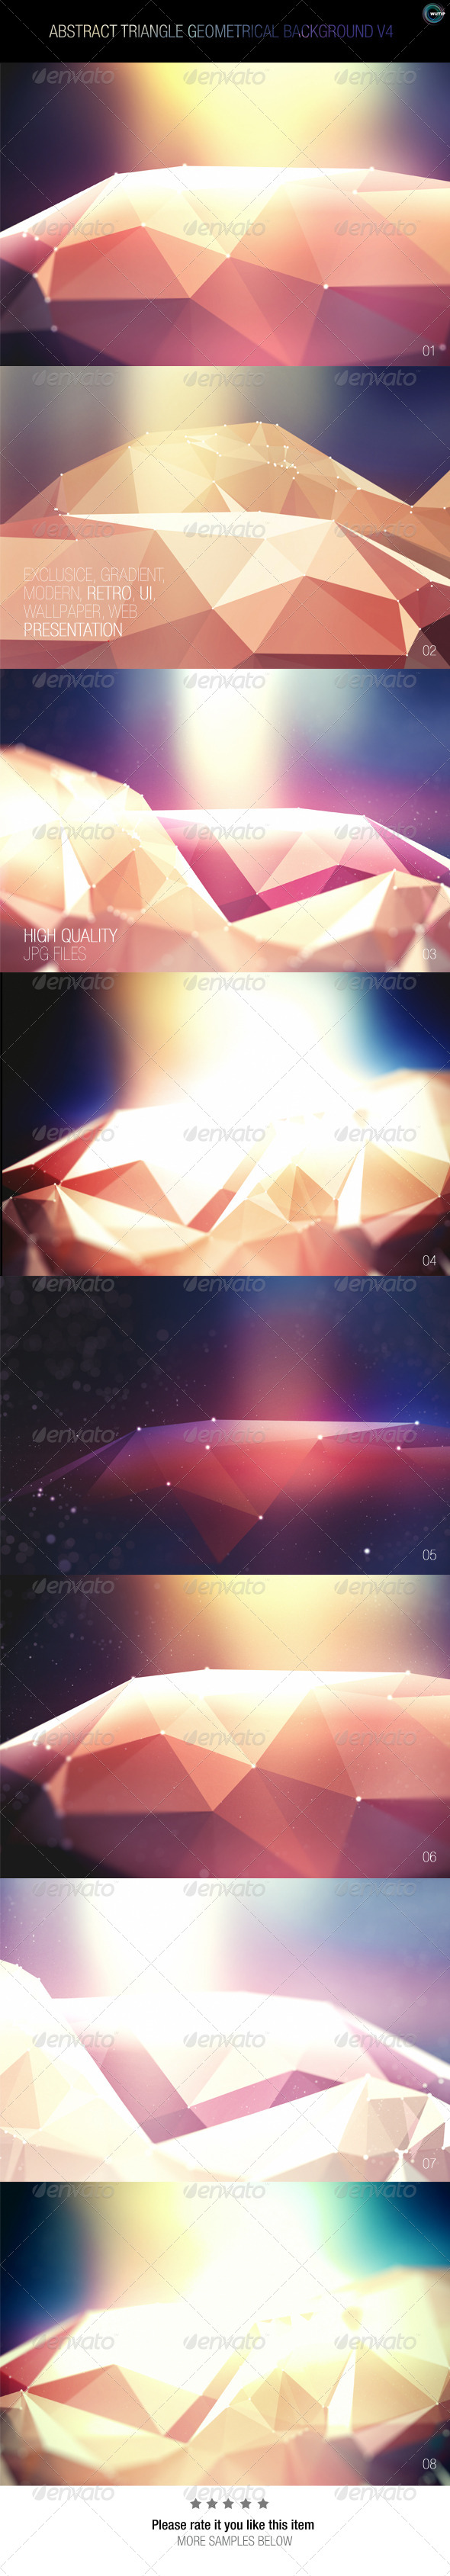 GraphicRiver Abstract Triangle Geometrical Background V4 7915477